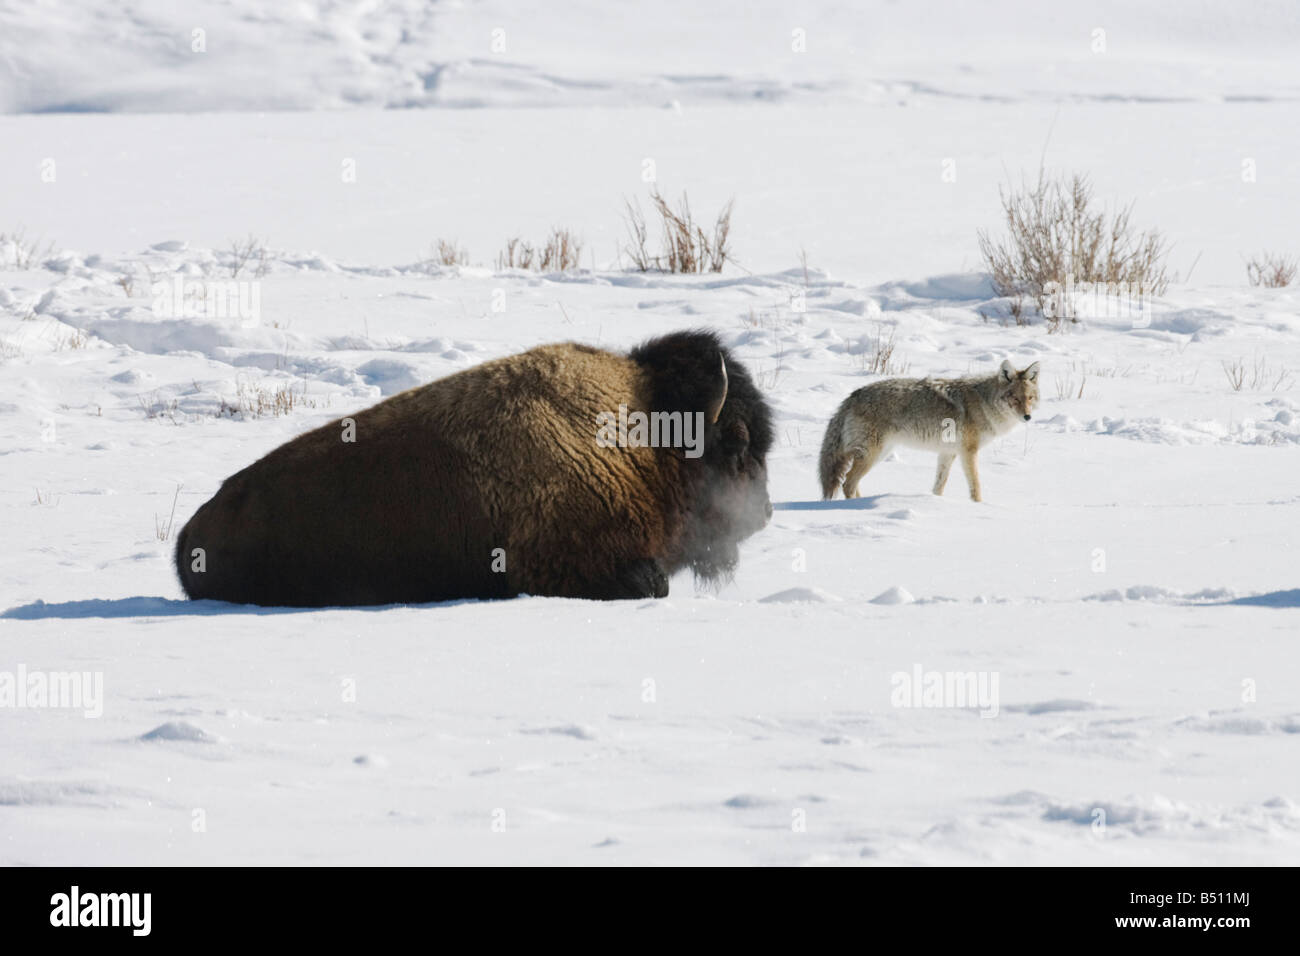 American Bison Buffalo Bison bison adult in snow and Coyote Canis latrans Yellowstone National Park Wyoming USA - Stock Image